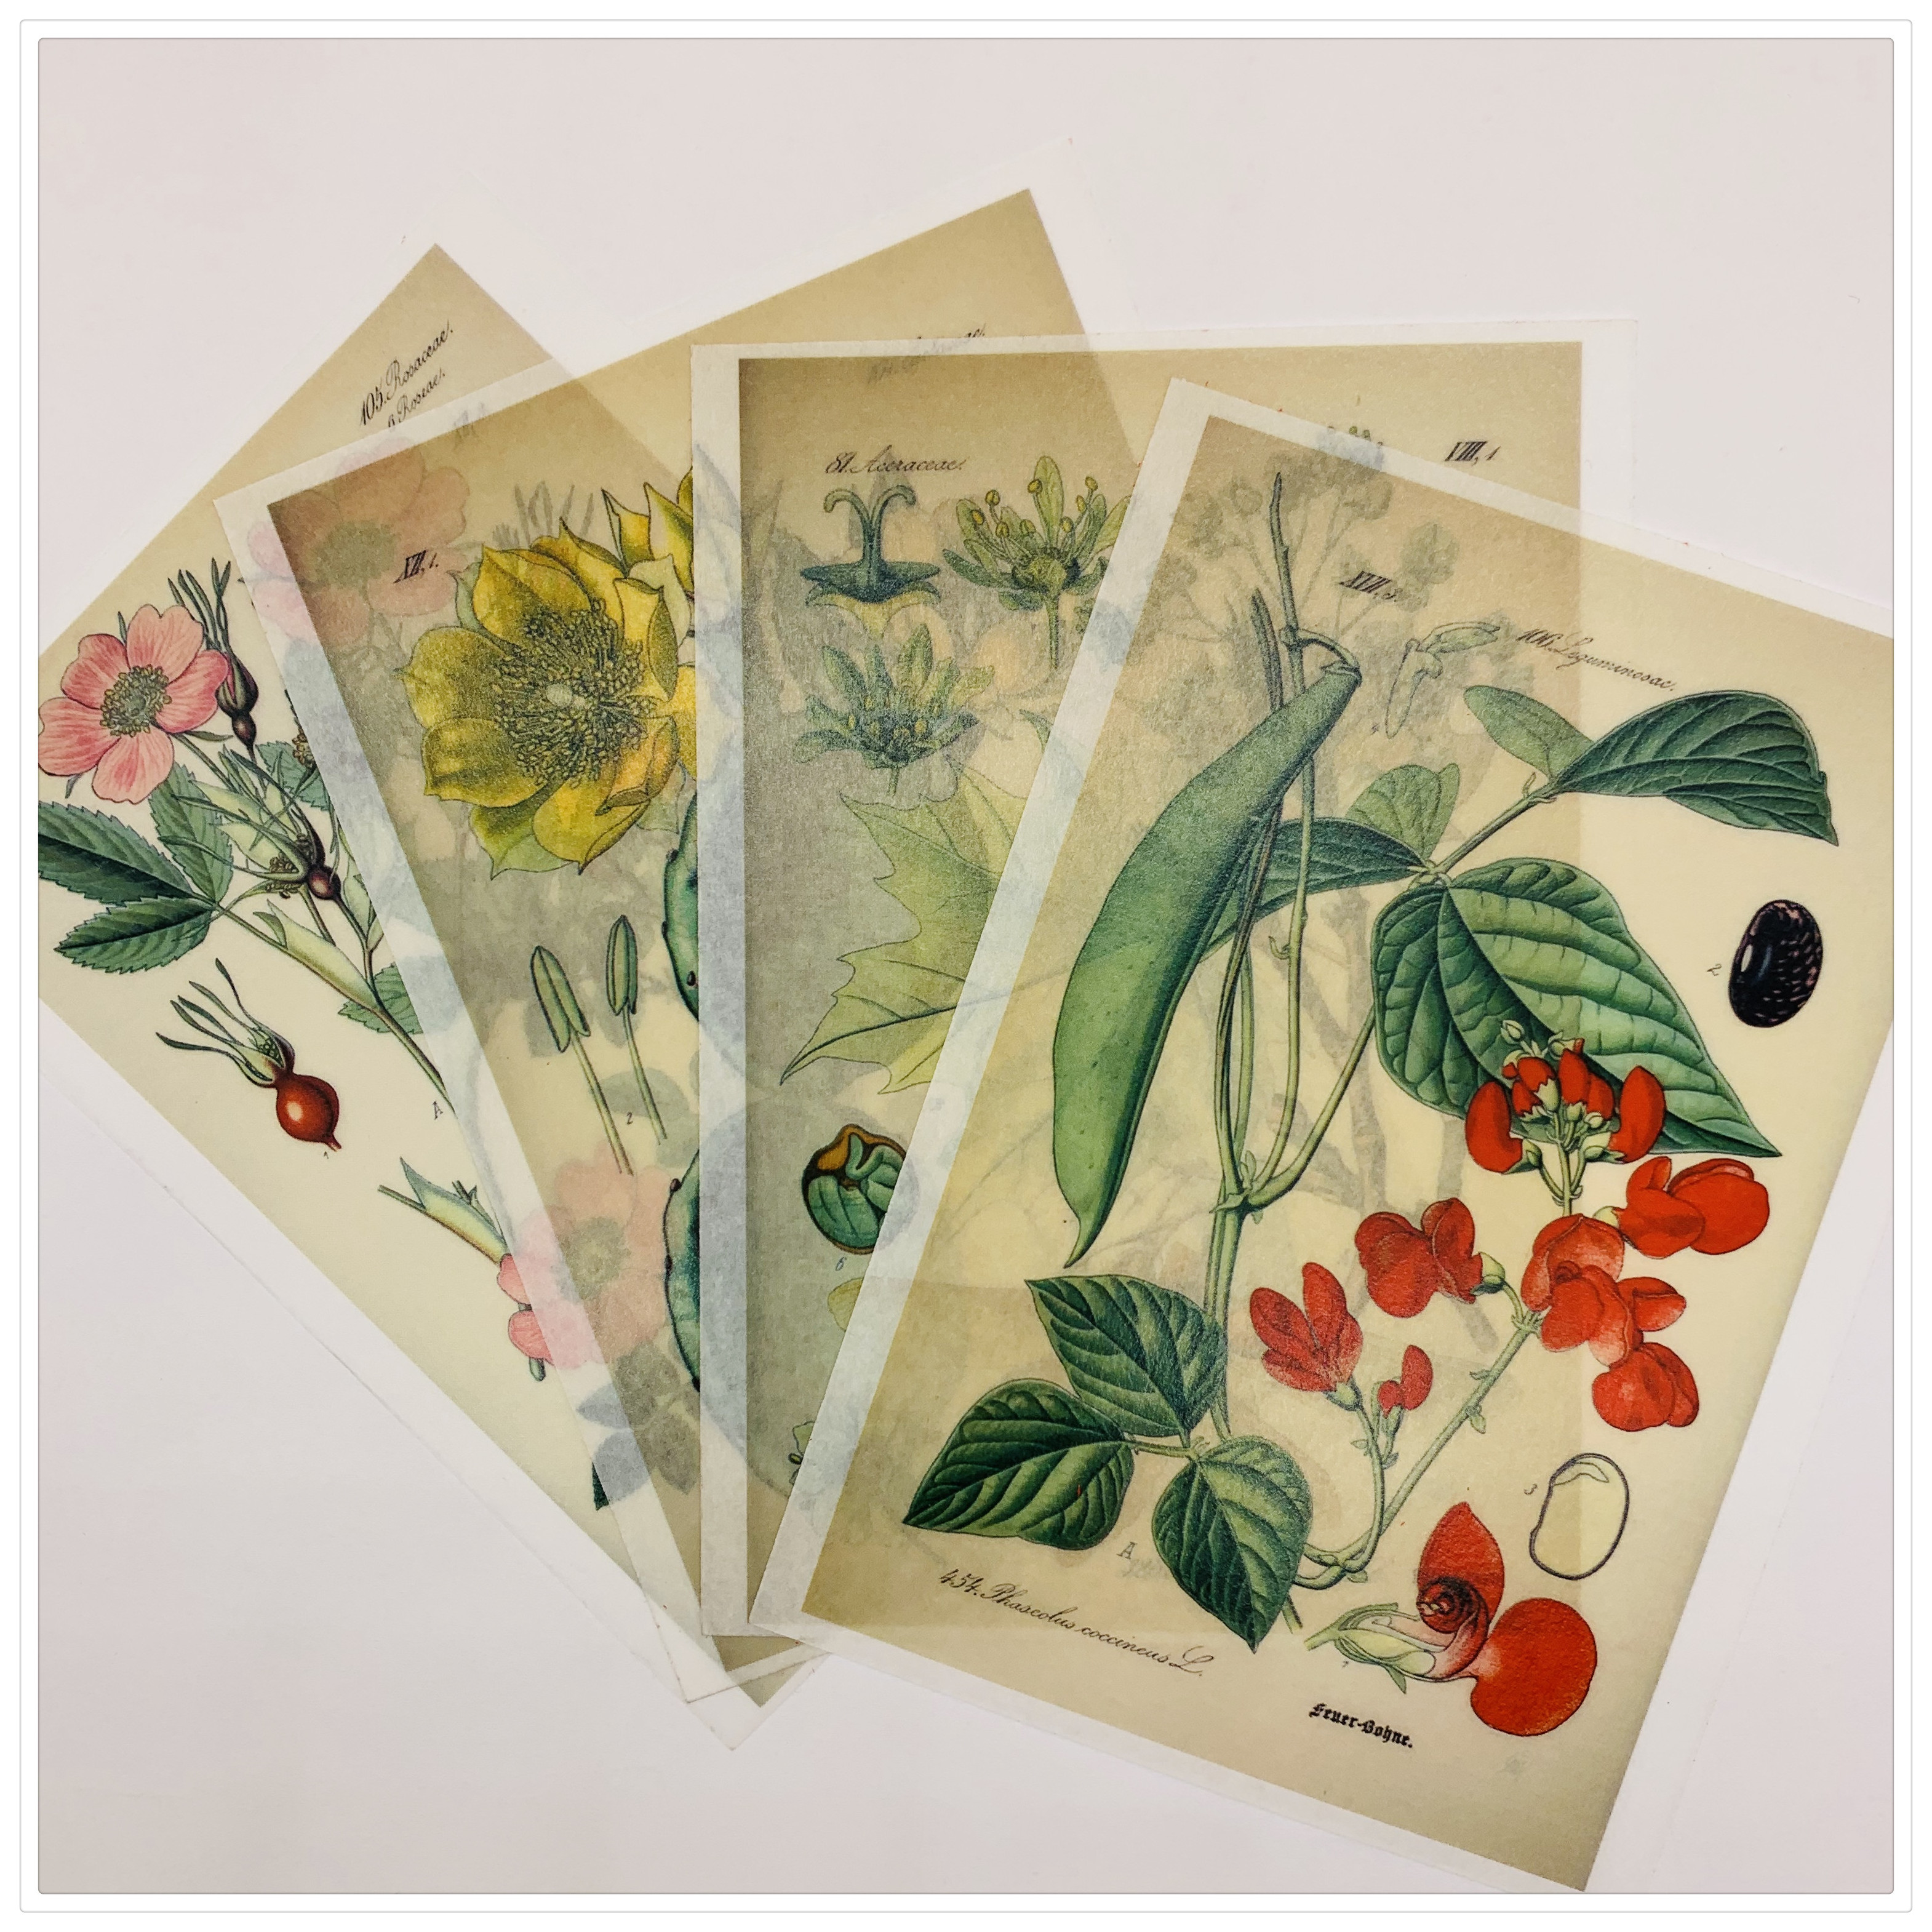 12PCS Vintage Botany Priming Stickers DIY Scrapbooking Album Junk Journal A6 Diary Happy Planner Decoration Stickers